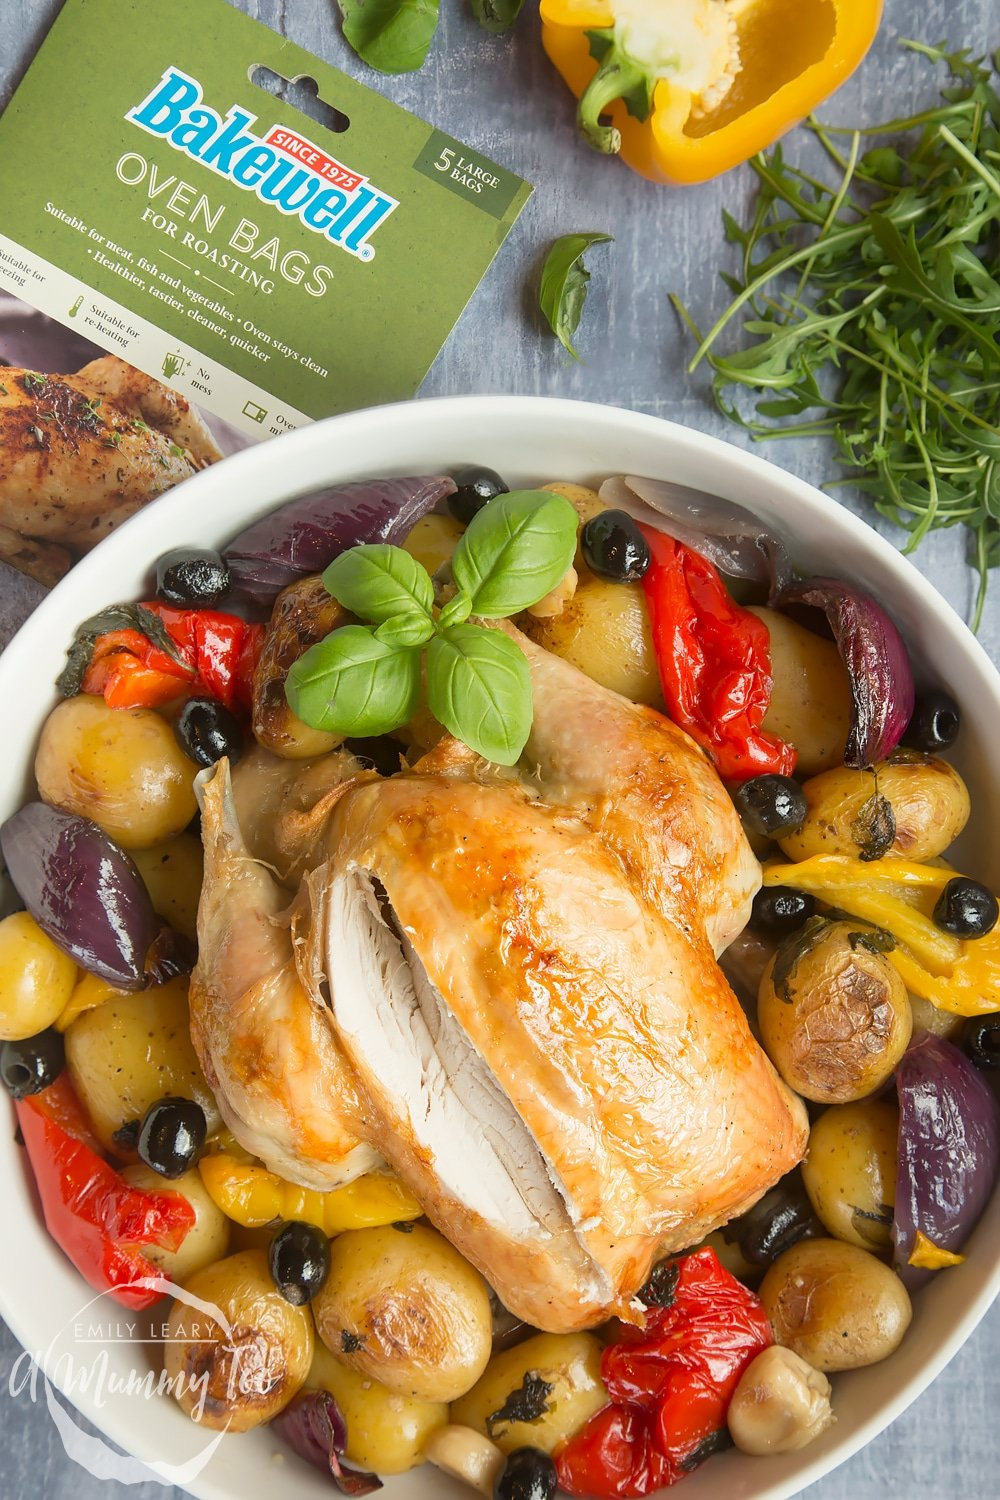 Healthier roast chicken, made using bakewell oven bags